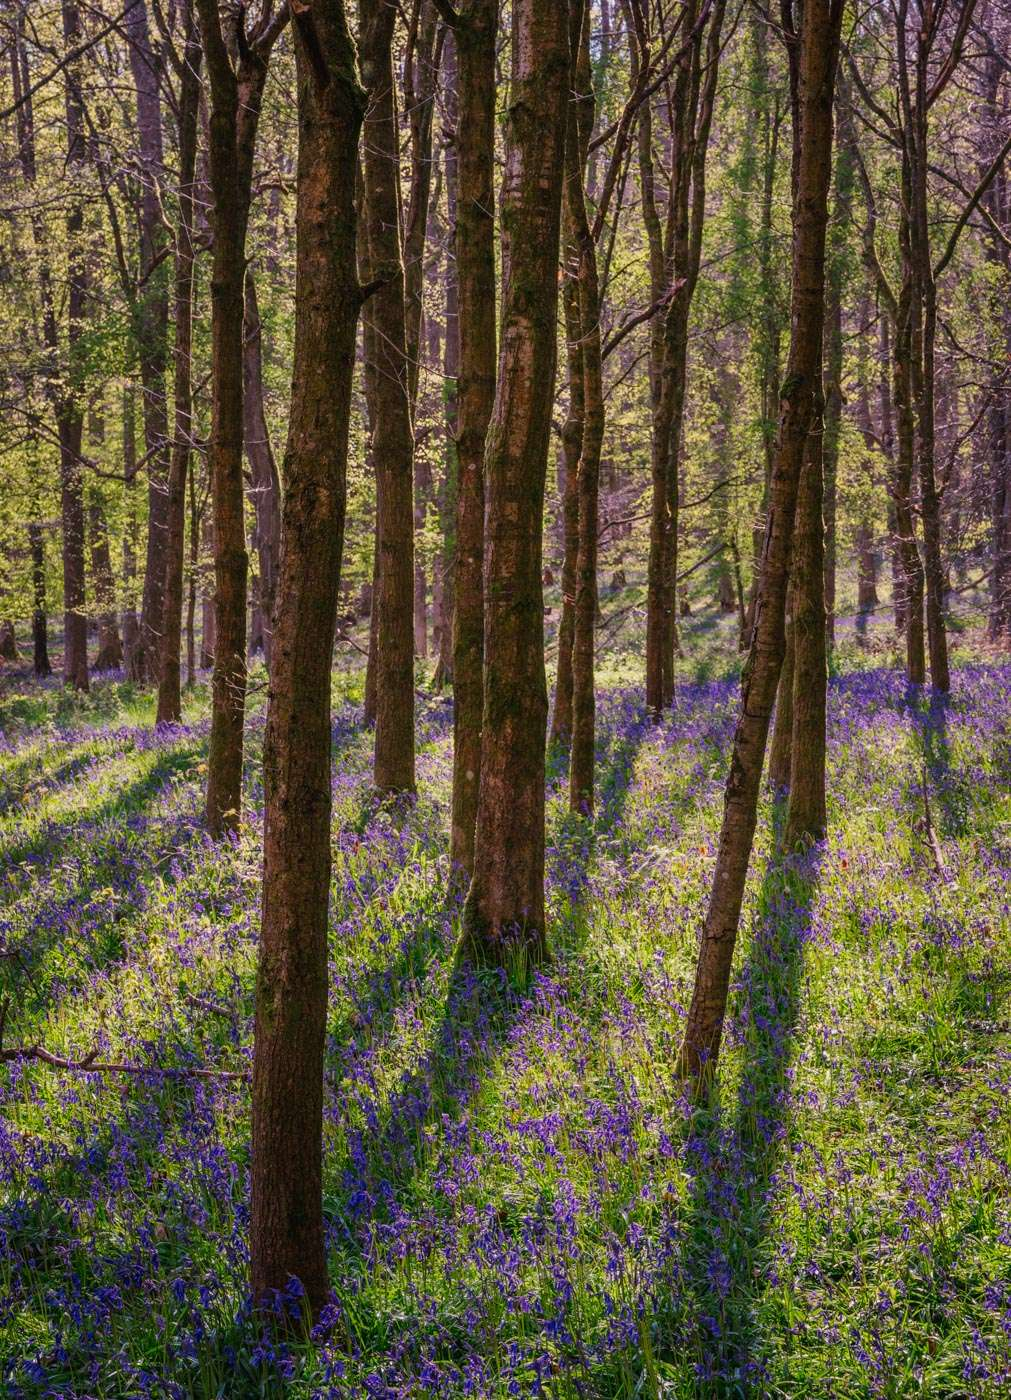 Photograph Bluebells early spring in Oxfordshire